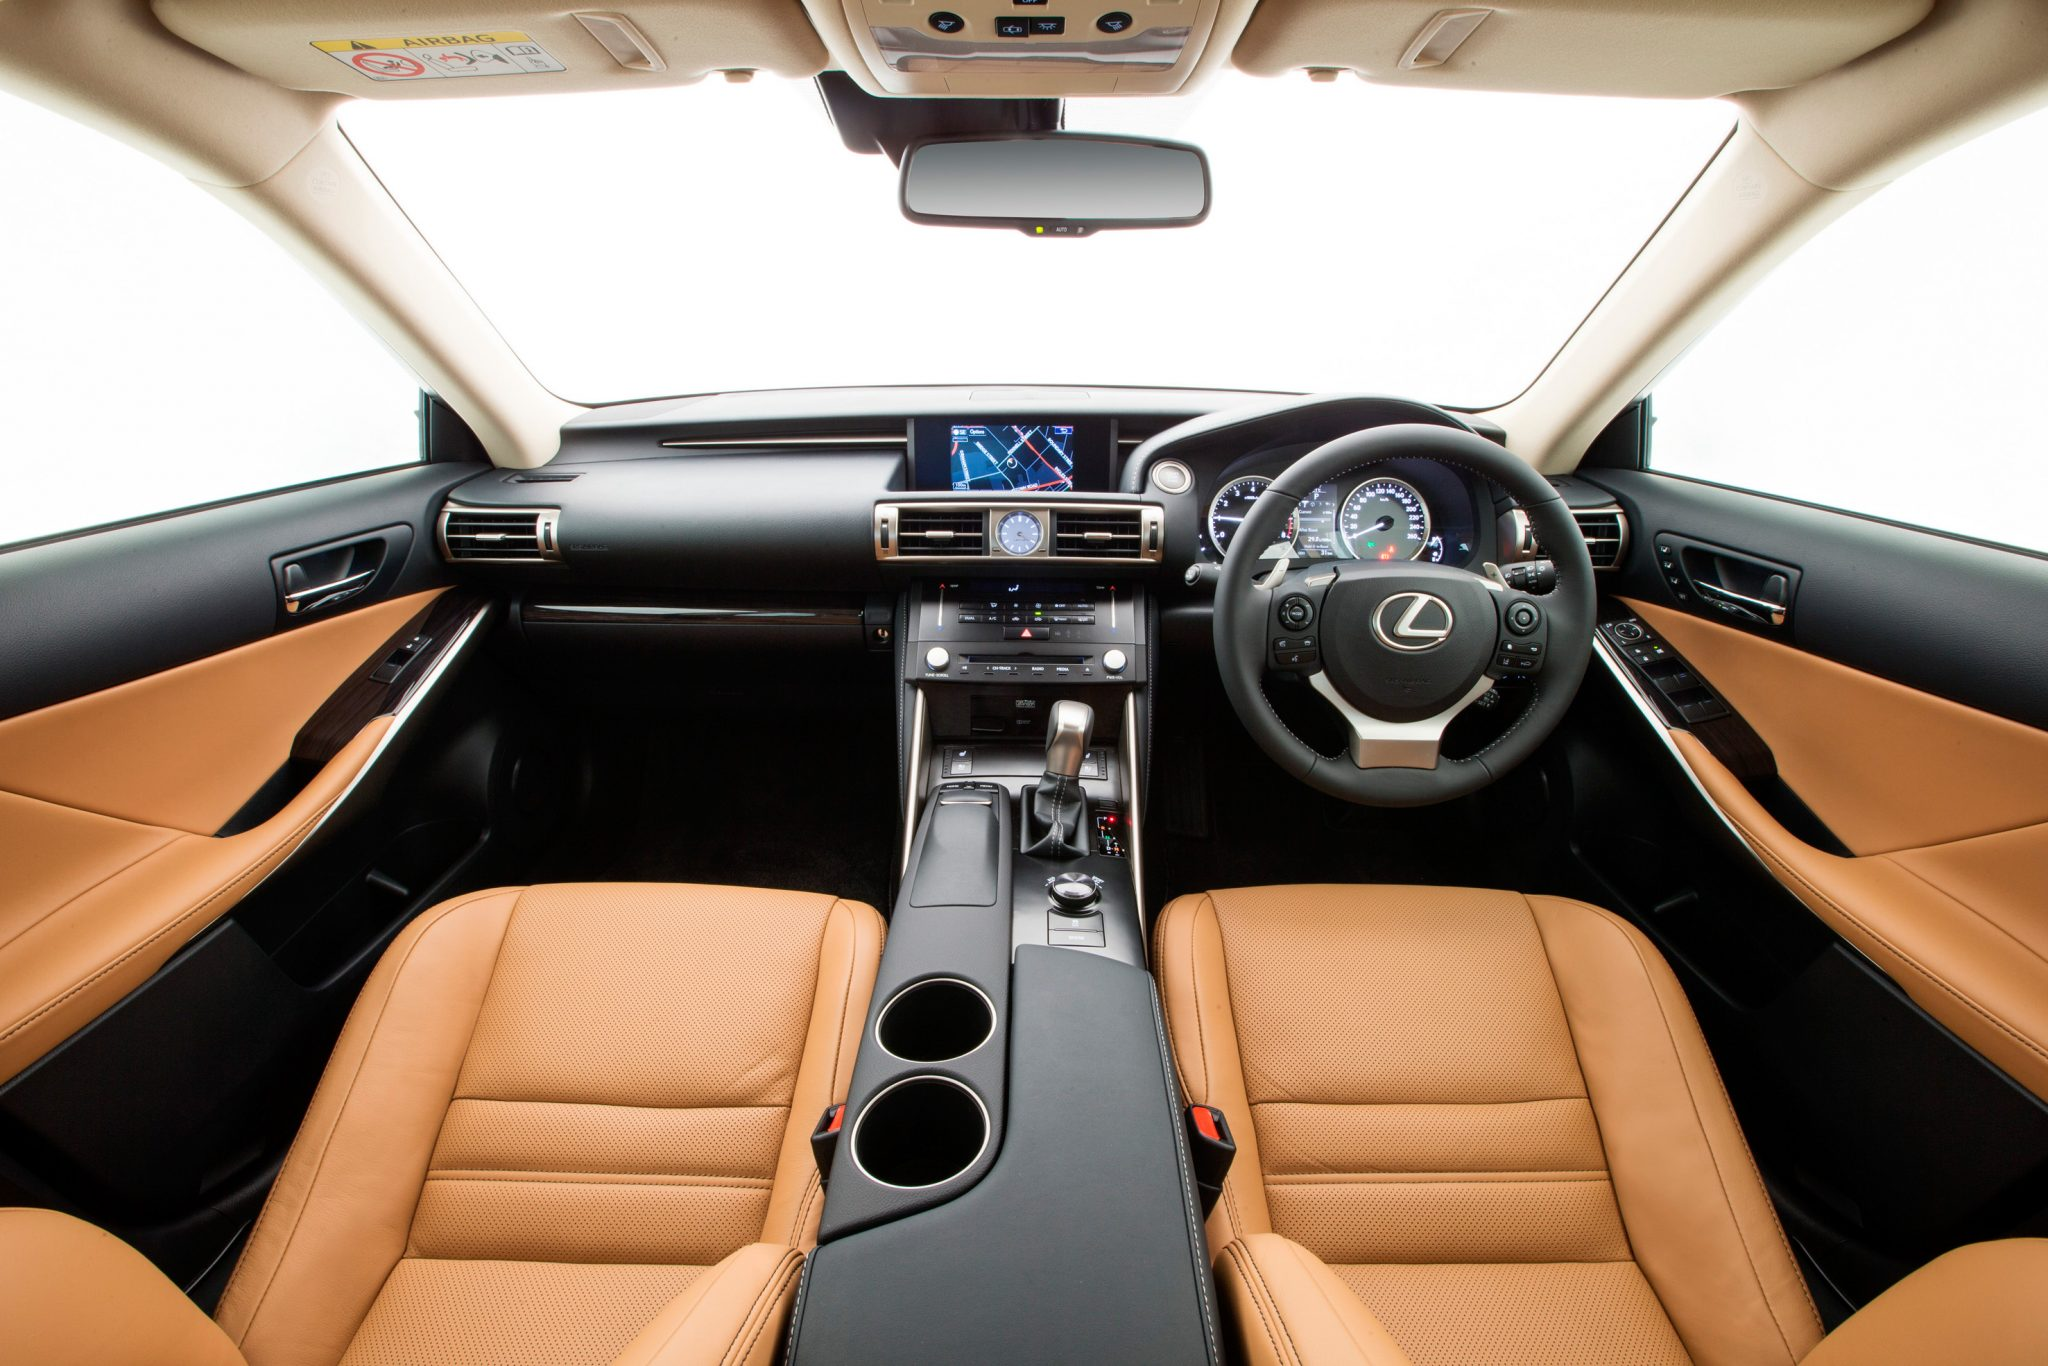 lexus is250 interior 2013 images galleries with a bite. Black Bedroom Furniture Sets. Home Design Ideas